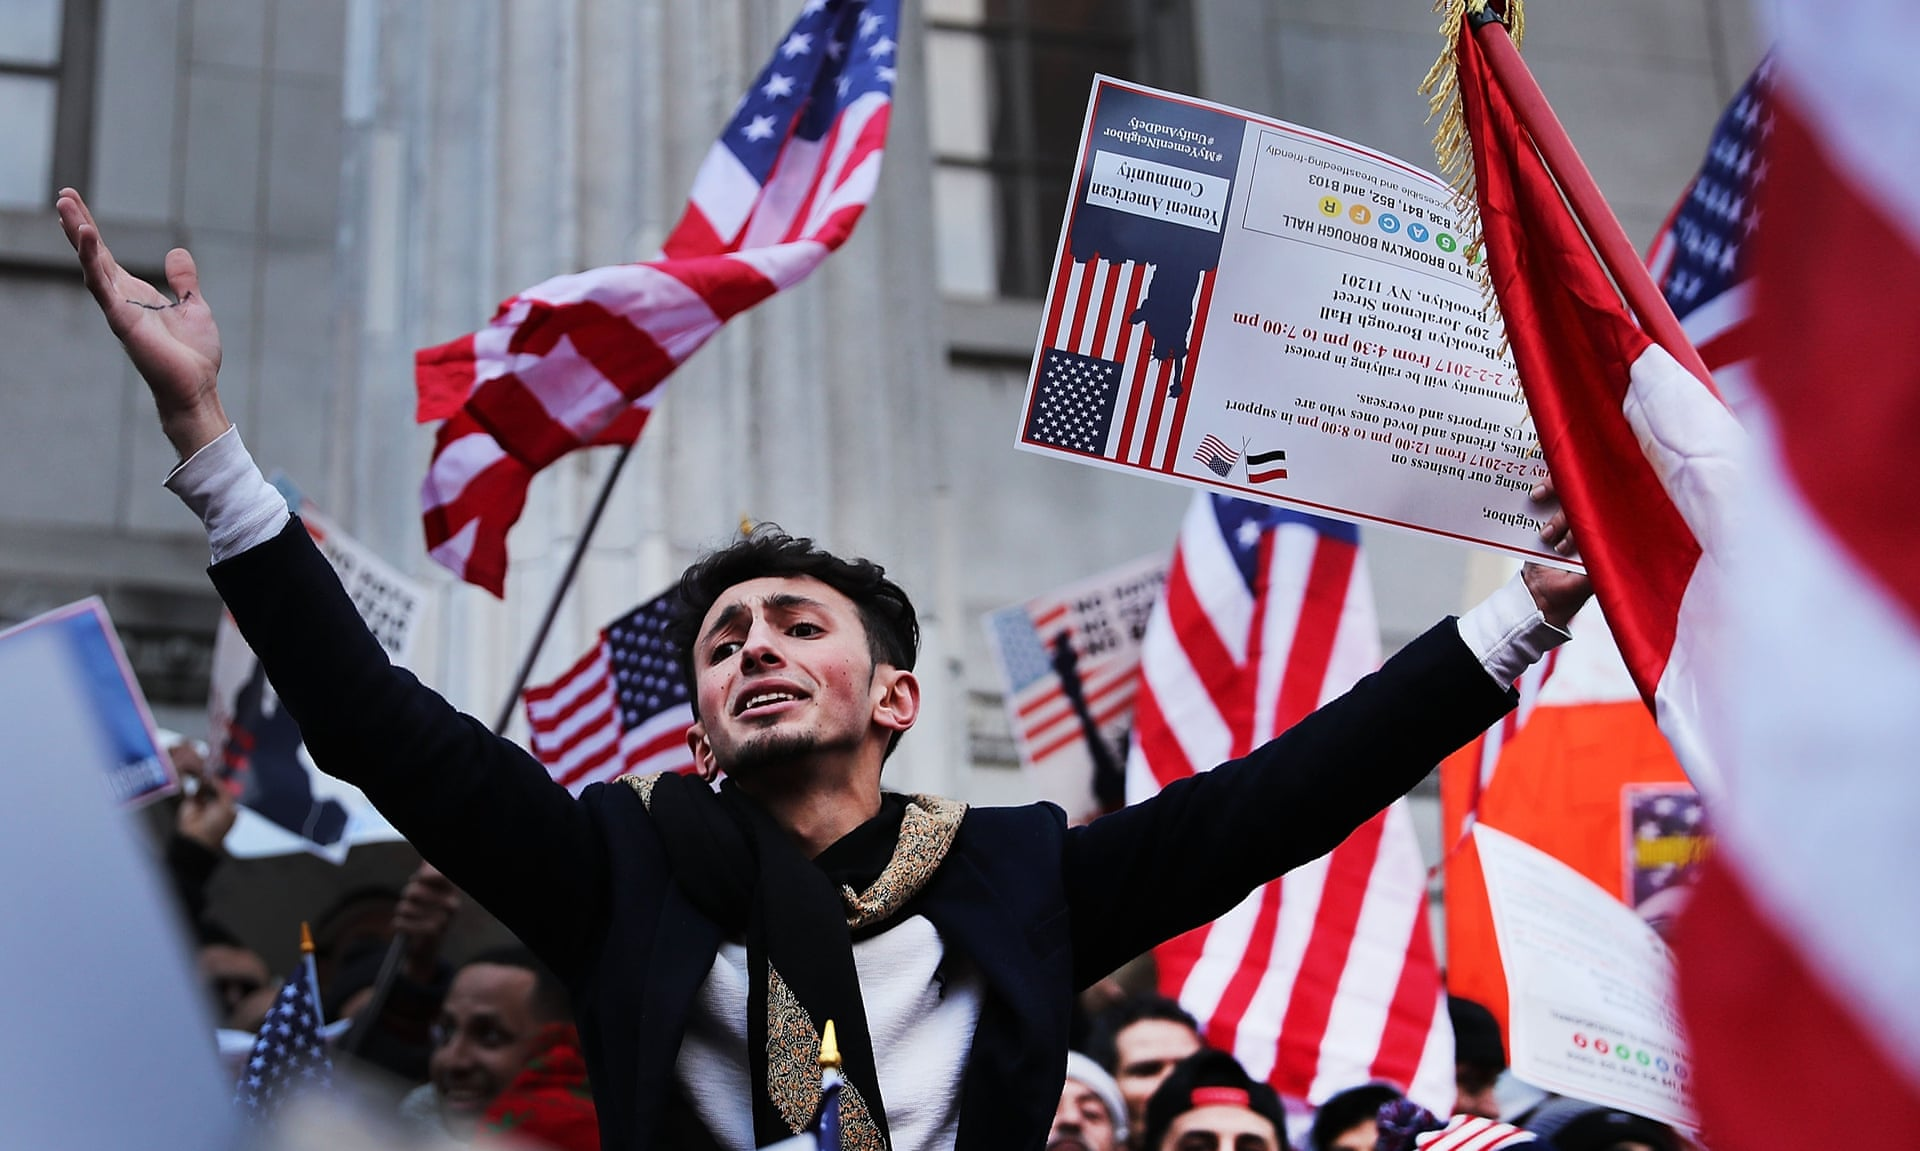 Yemenis and supporters protest against Donald Trump's executive order temporarily banning immigrants and refugees from seven Muslim-majority countries, including Yemen on 2 February 2017 in Brooklyn. Photograph: Spencer Platt/Getty Images